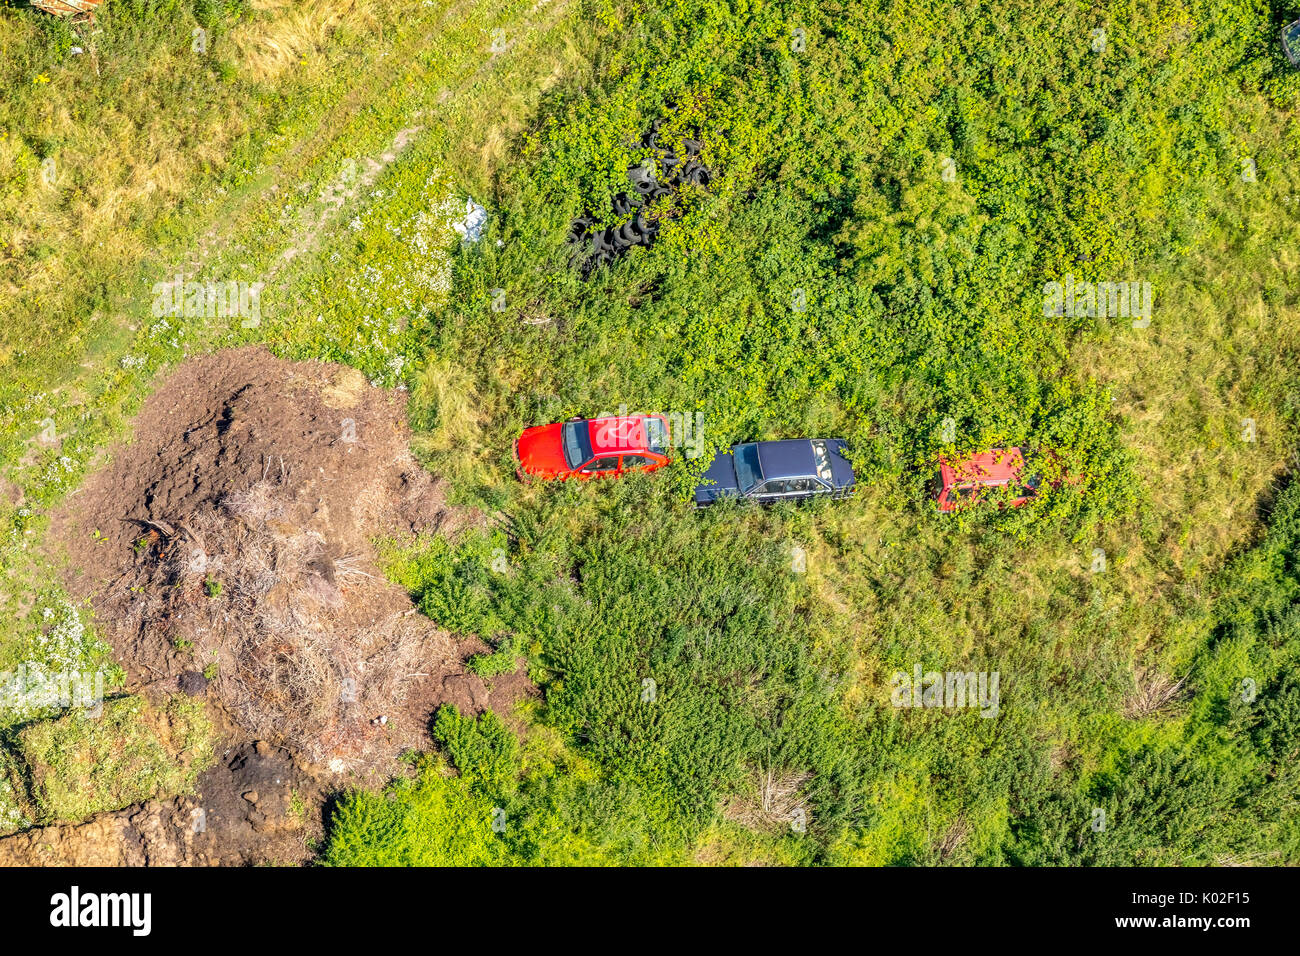 wild Old car pile in Esborn, overgrown junk cars are in nature, Wetter (Ruhr), Ruhr area, North Rhine-Westphalia, Germany, Europe, Aerial View, Aerial - Stock Image